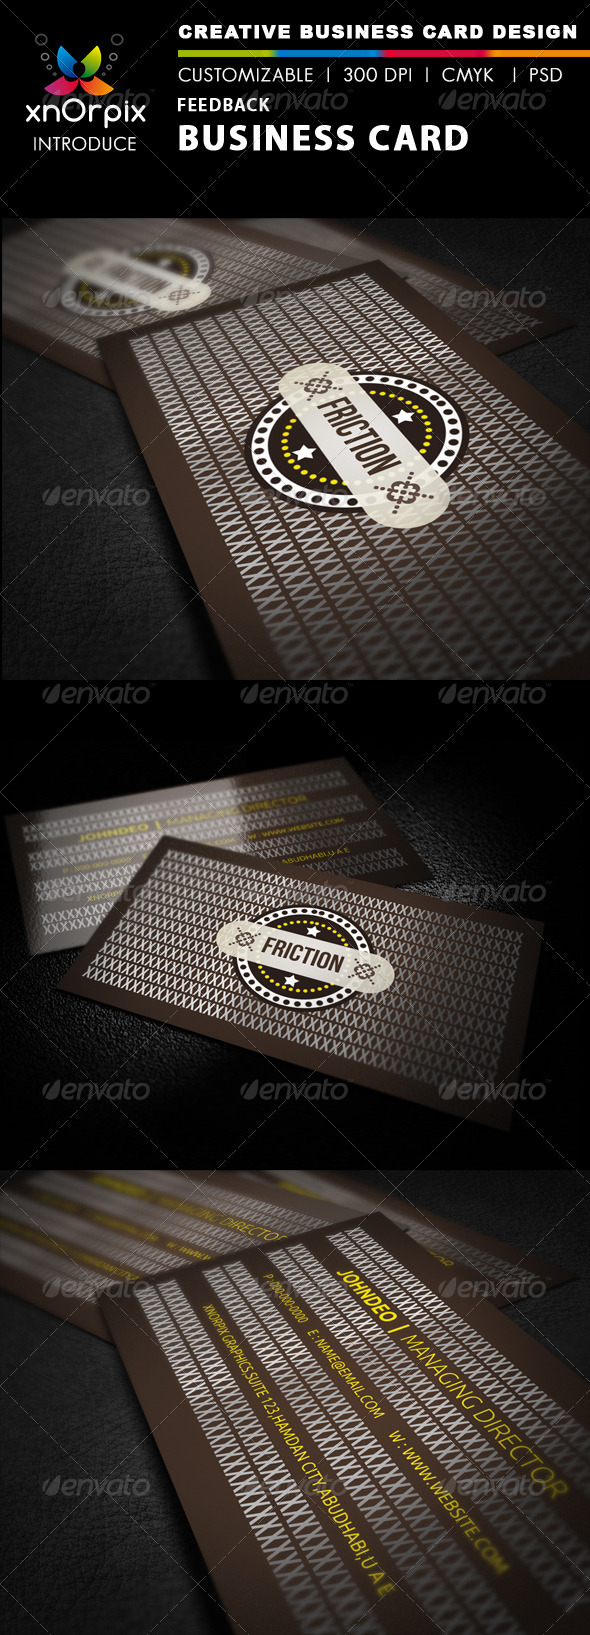 Feedback Business Card - Business Cards Print Templates